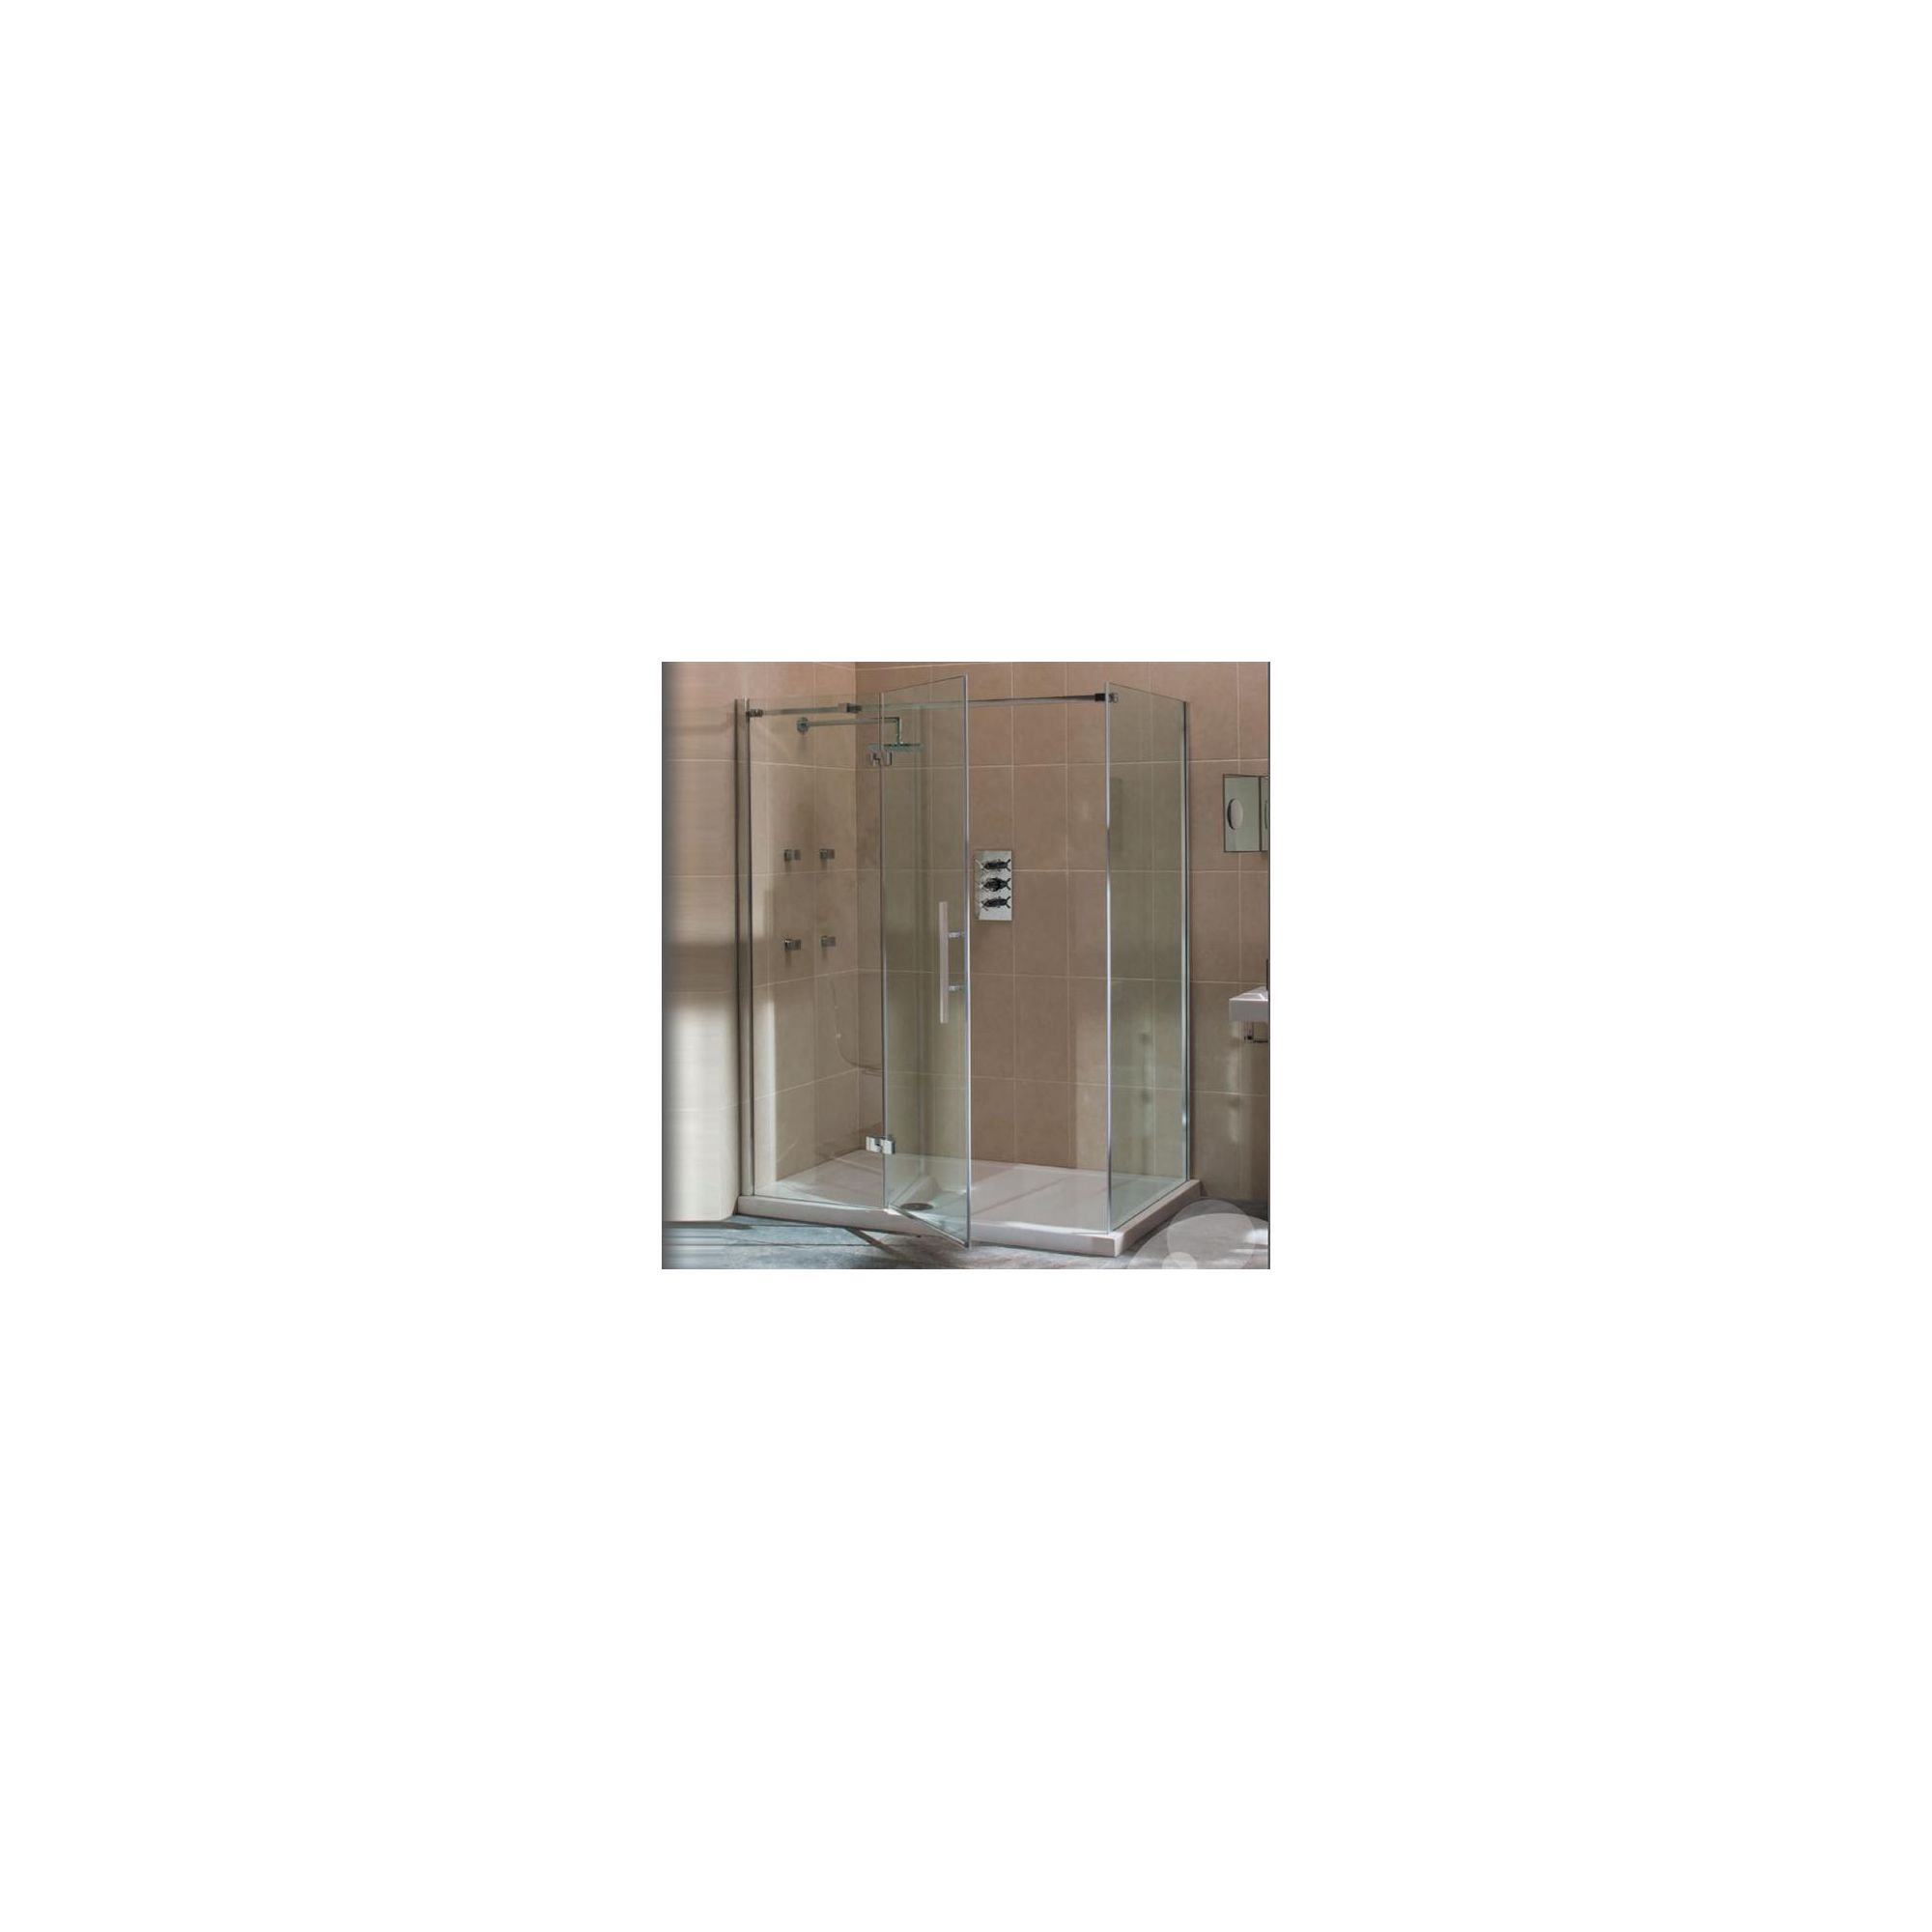 Merlyn Vivid Nine Hinged Door Shower Enclosure with Inline Panel, 1700mm x 800mm, Left Handed, Low Profile Tray, 8mm Glass at Tesco Direct